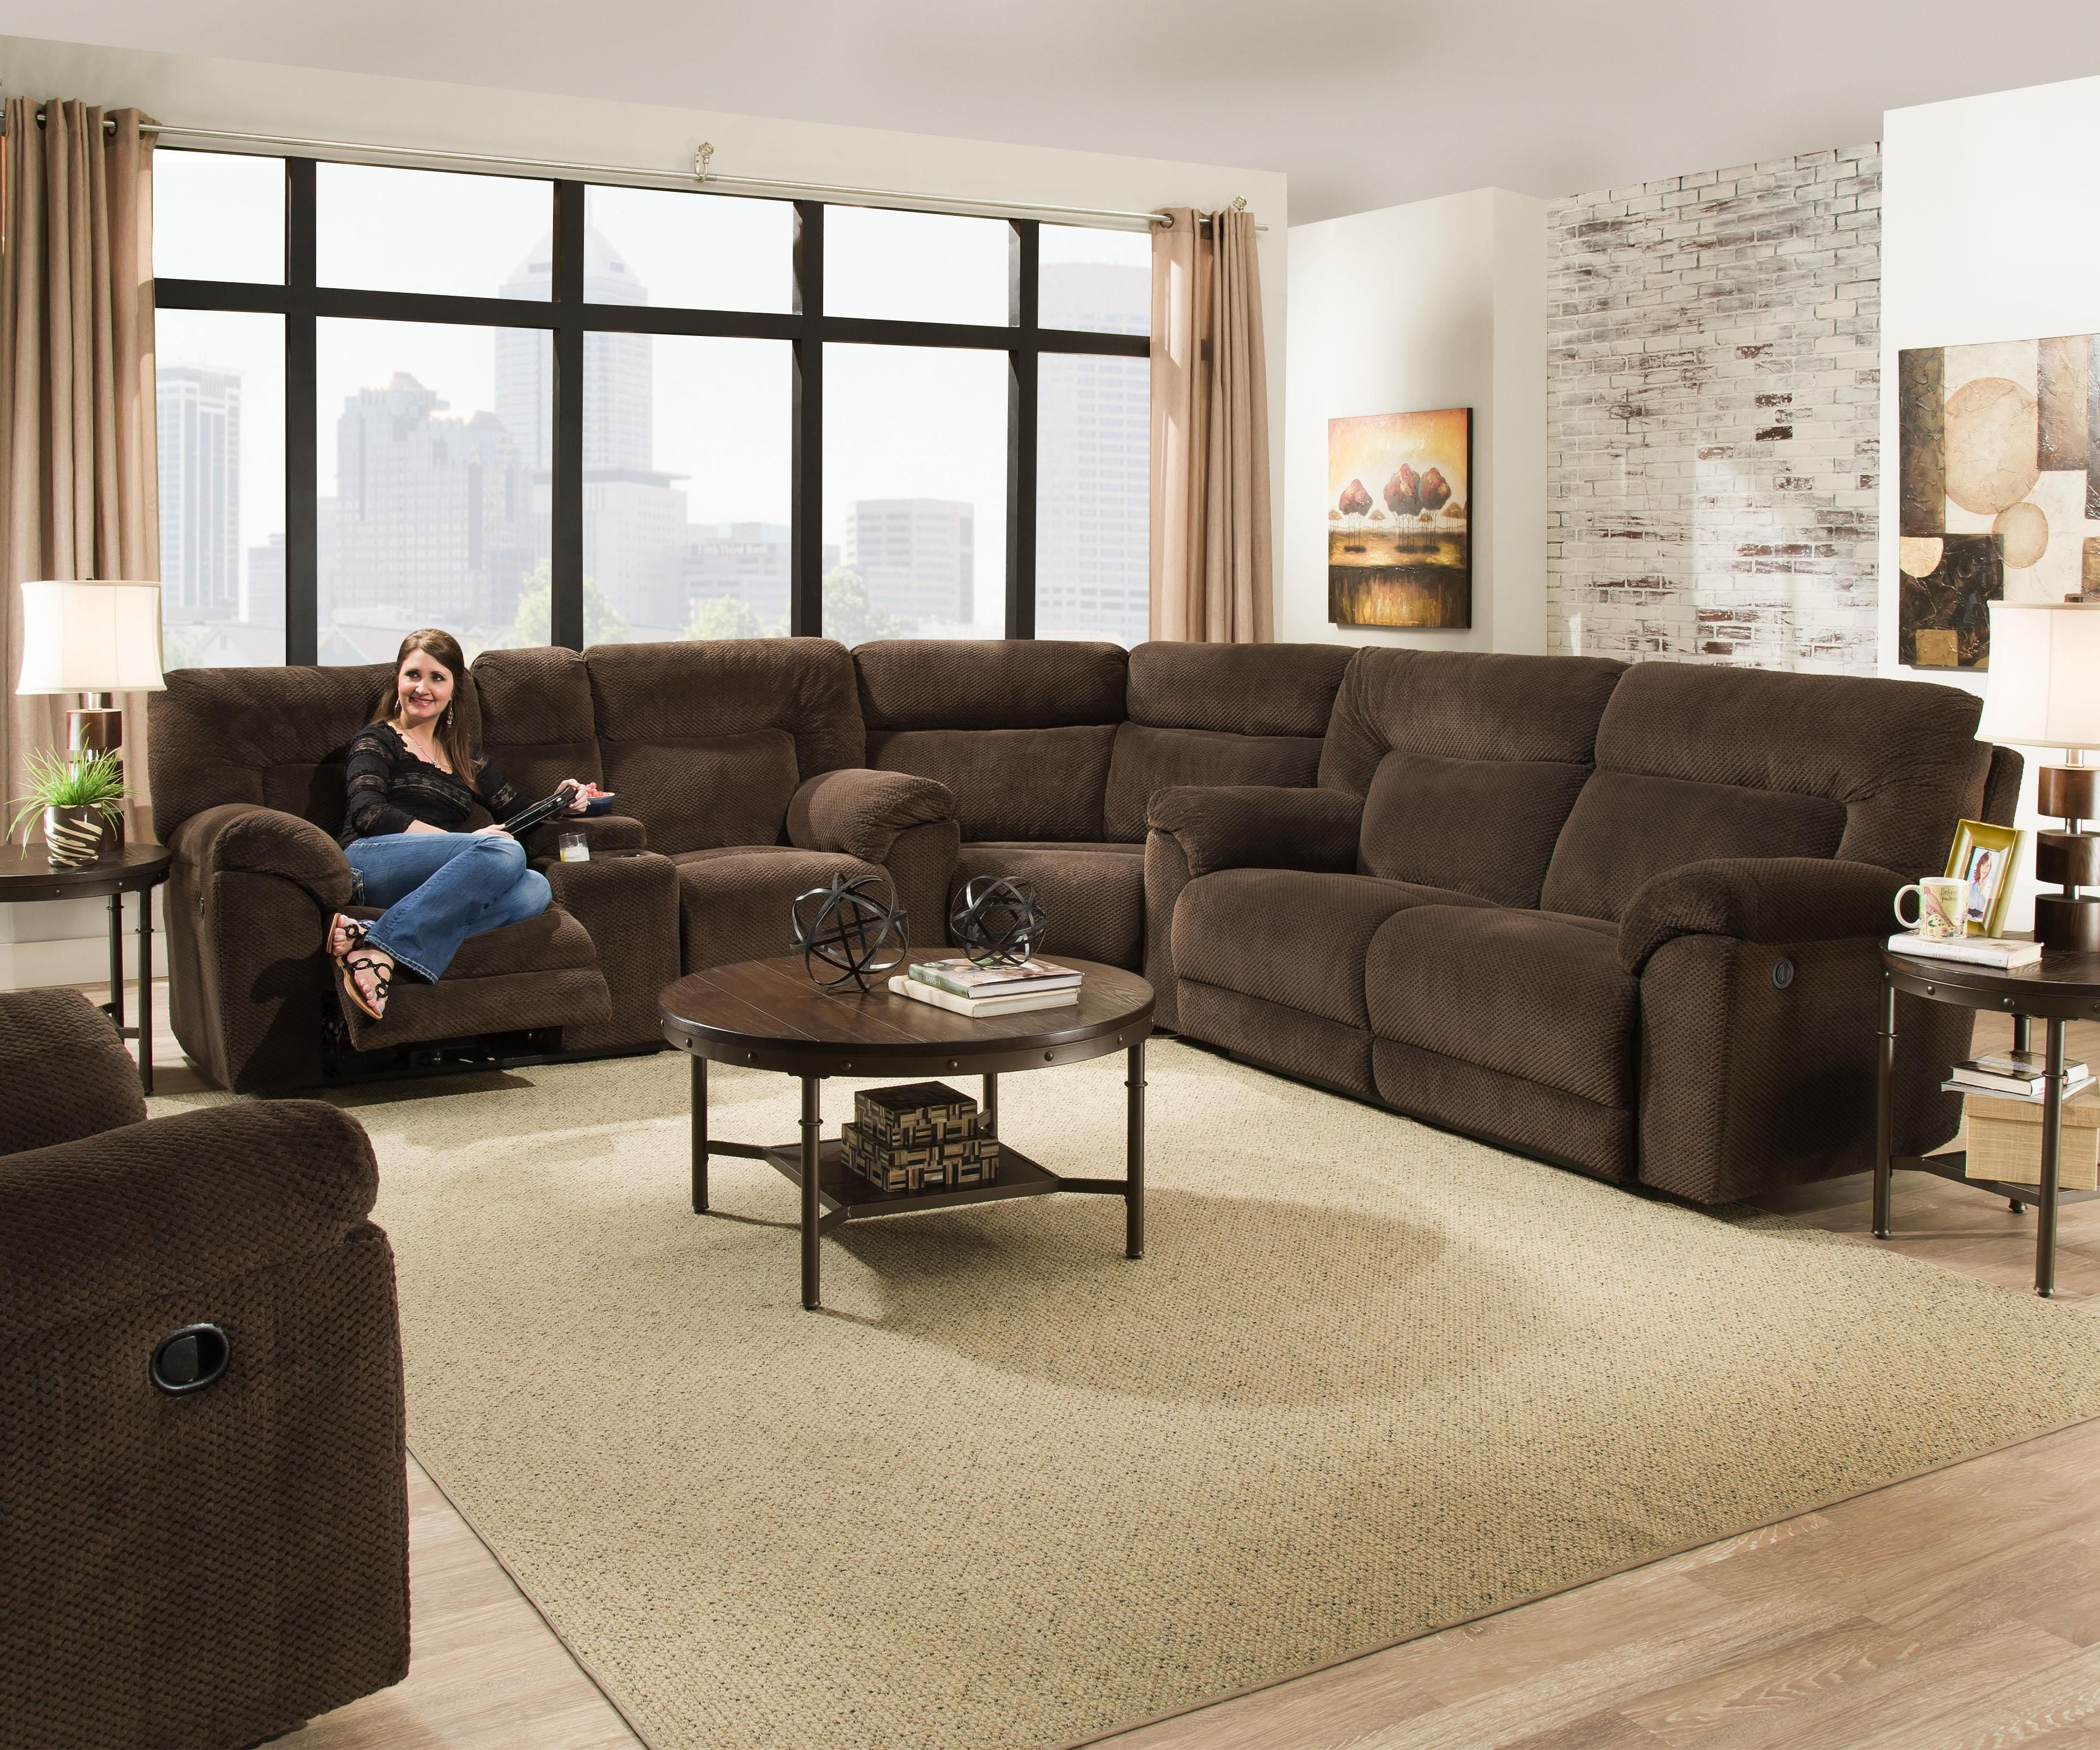 50570 Reclining Sectional Sofa By Simmons Upholstery Reclining